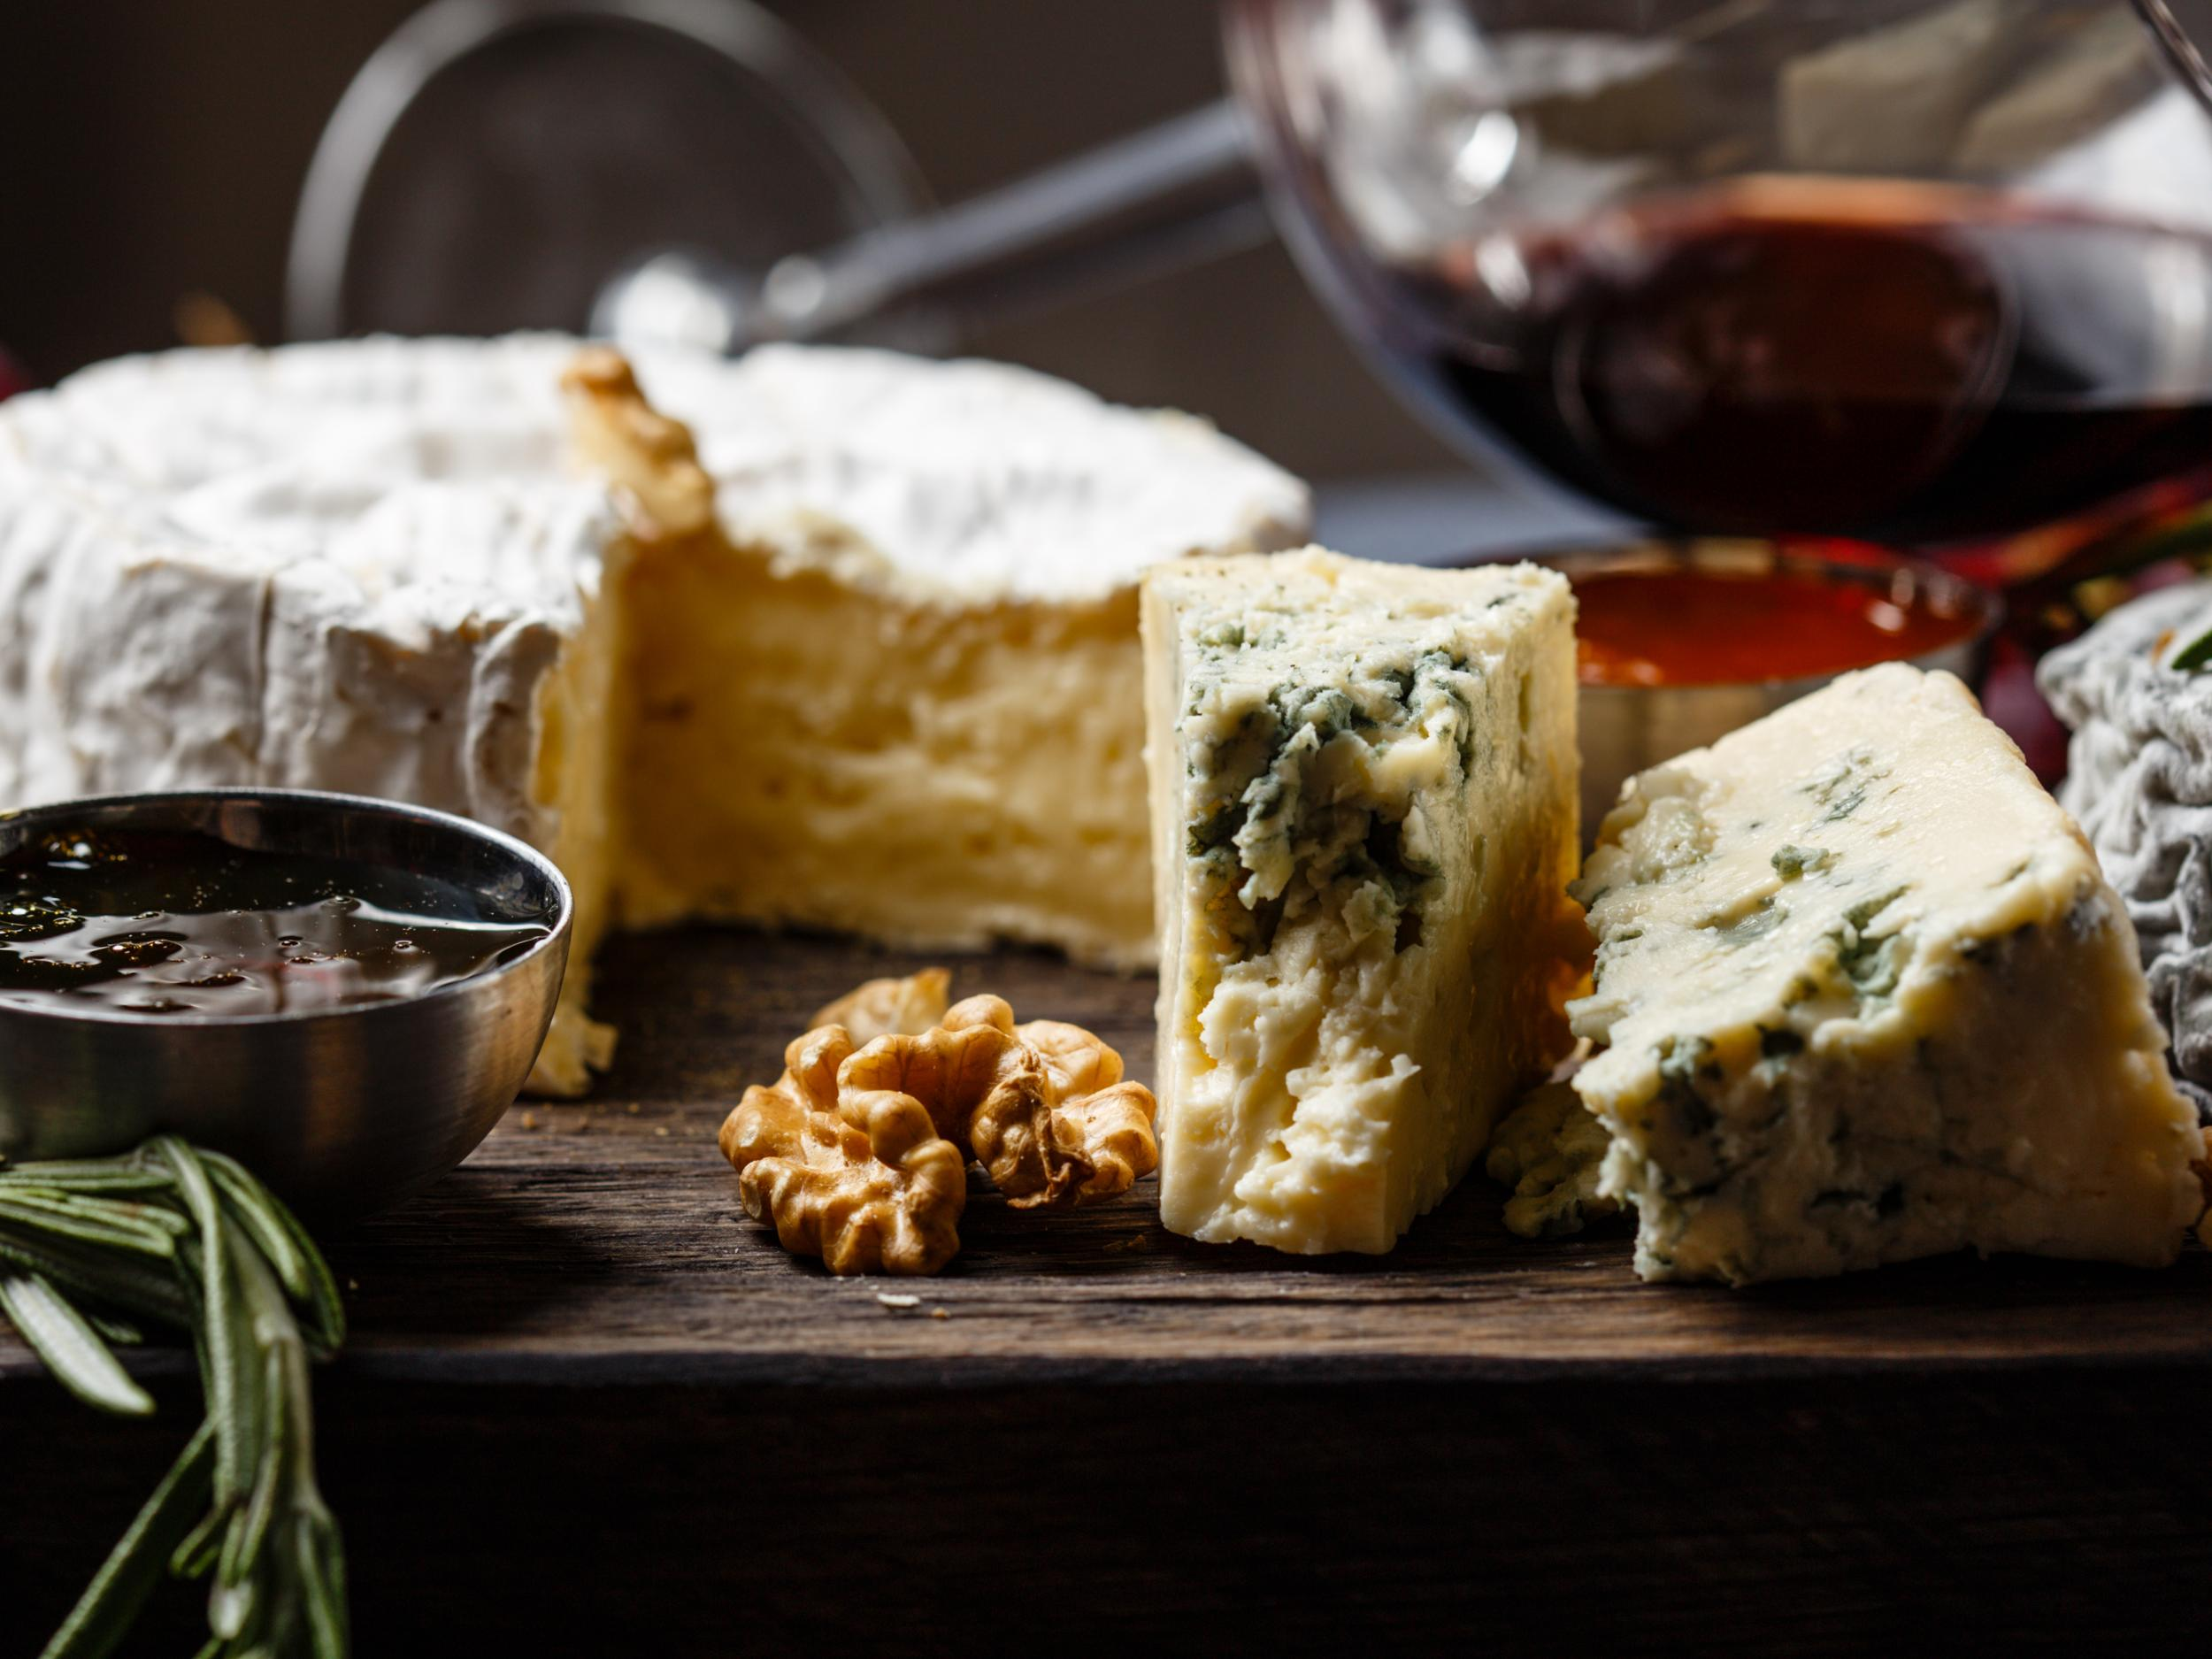 Top 7 places for cheese lovers in the world